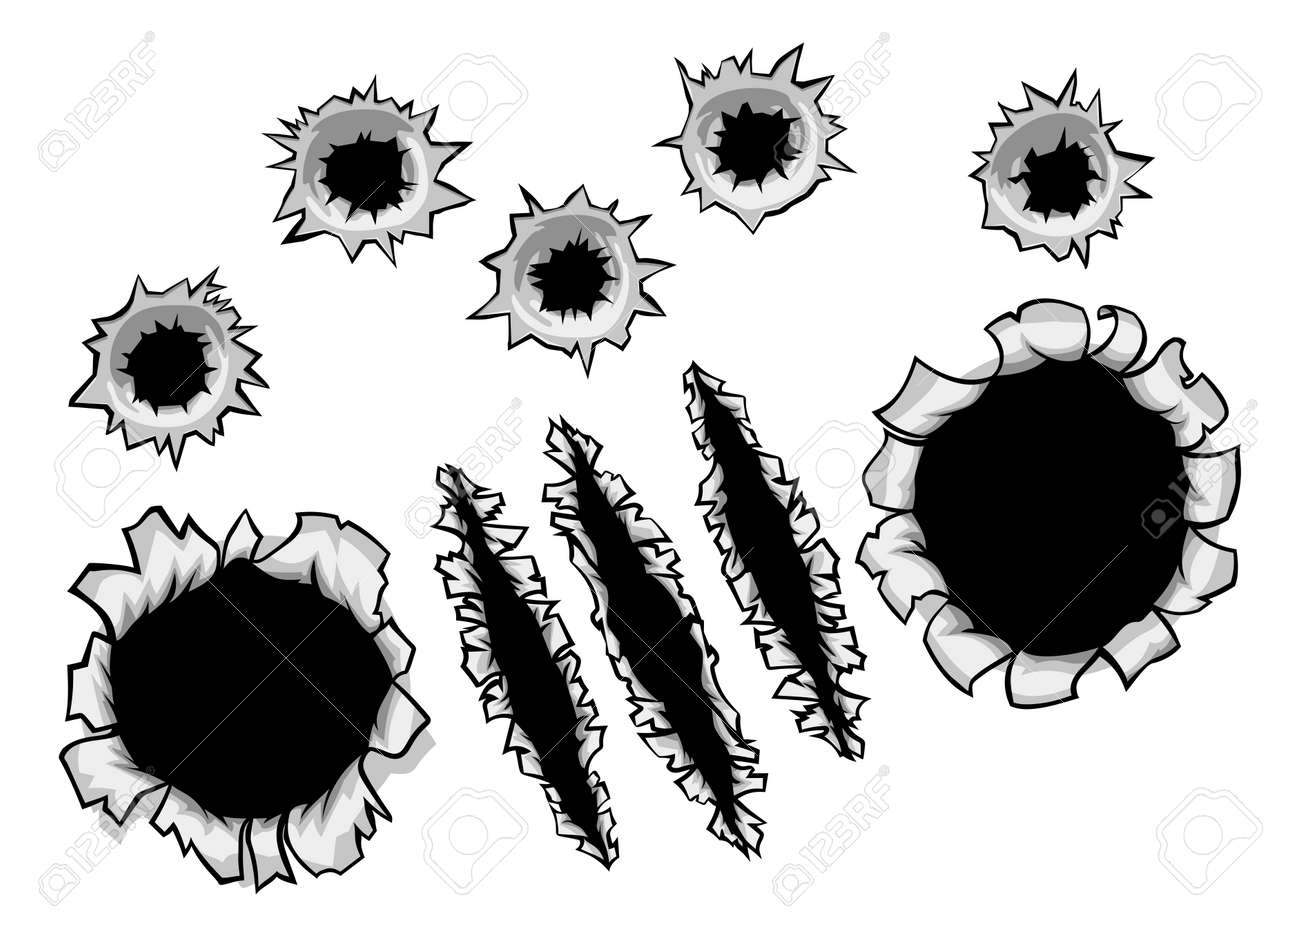 Bullet Holes and Claw Ripped Torn Background - 83649725